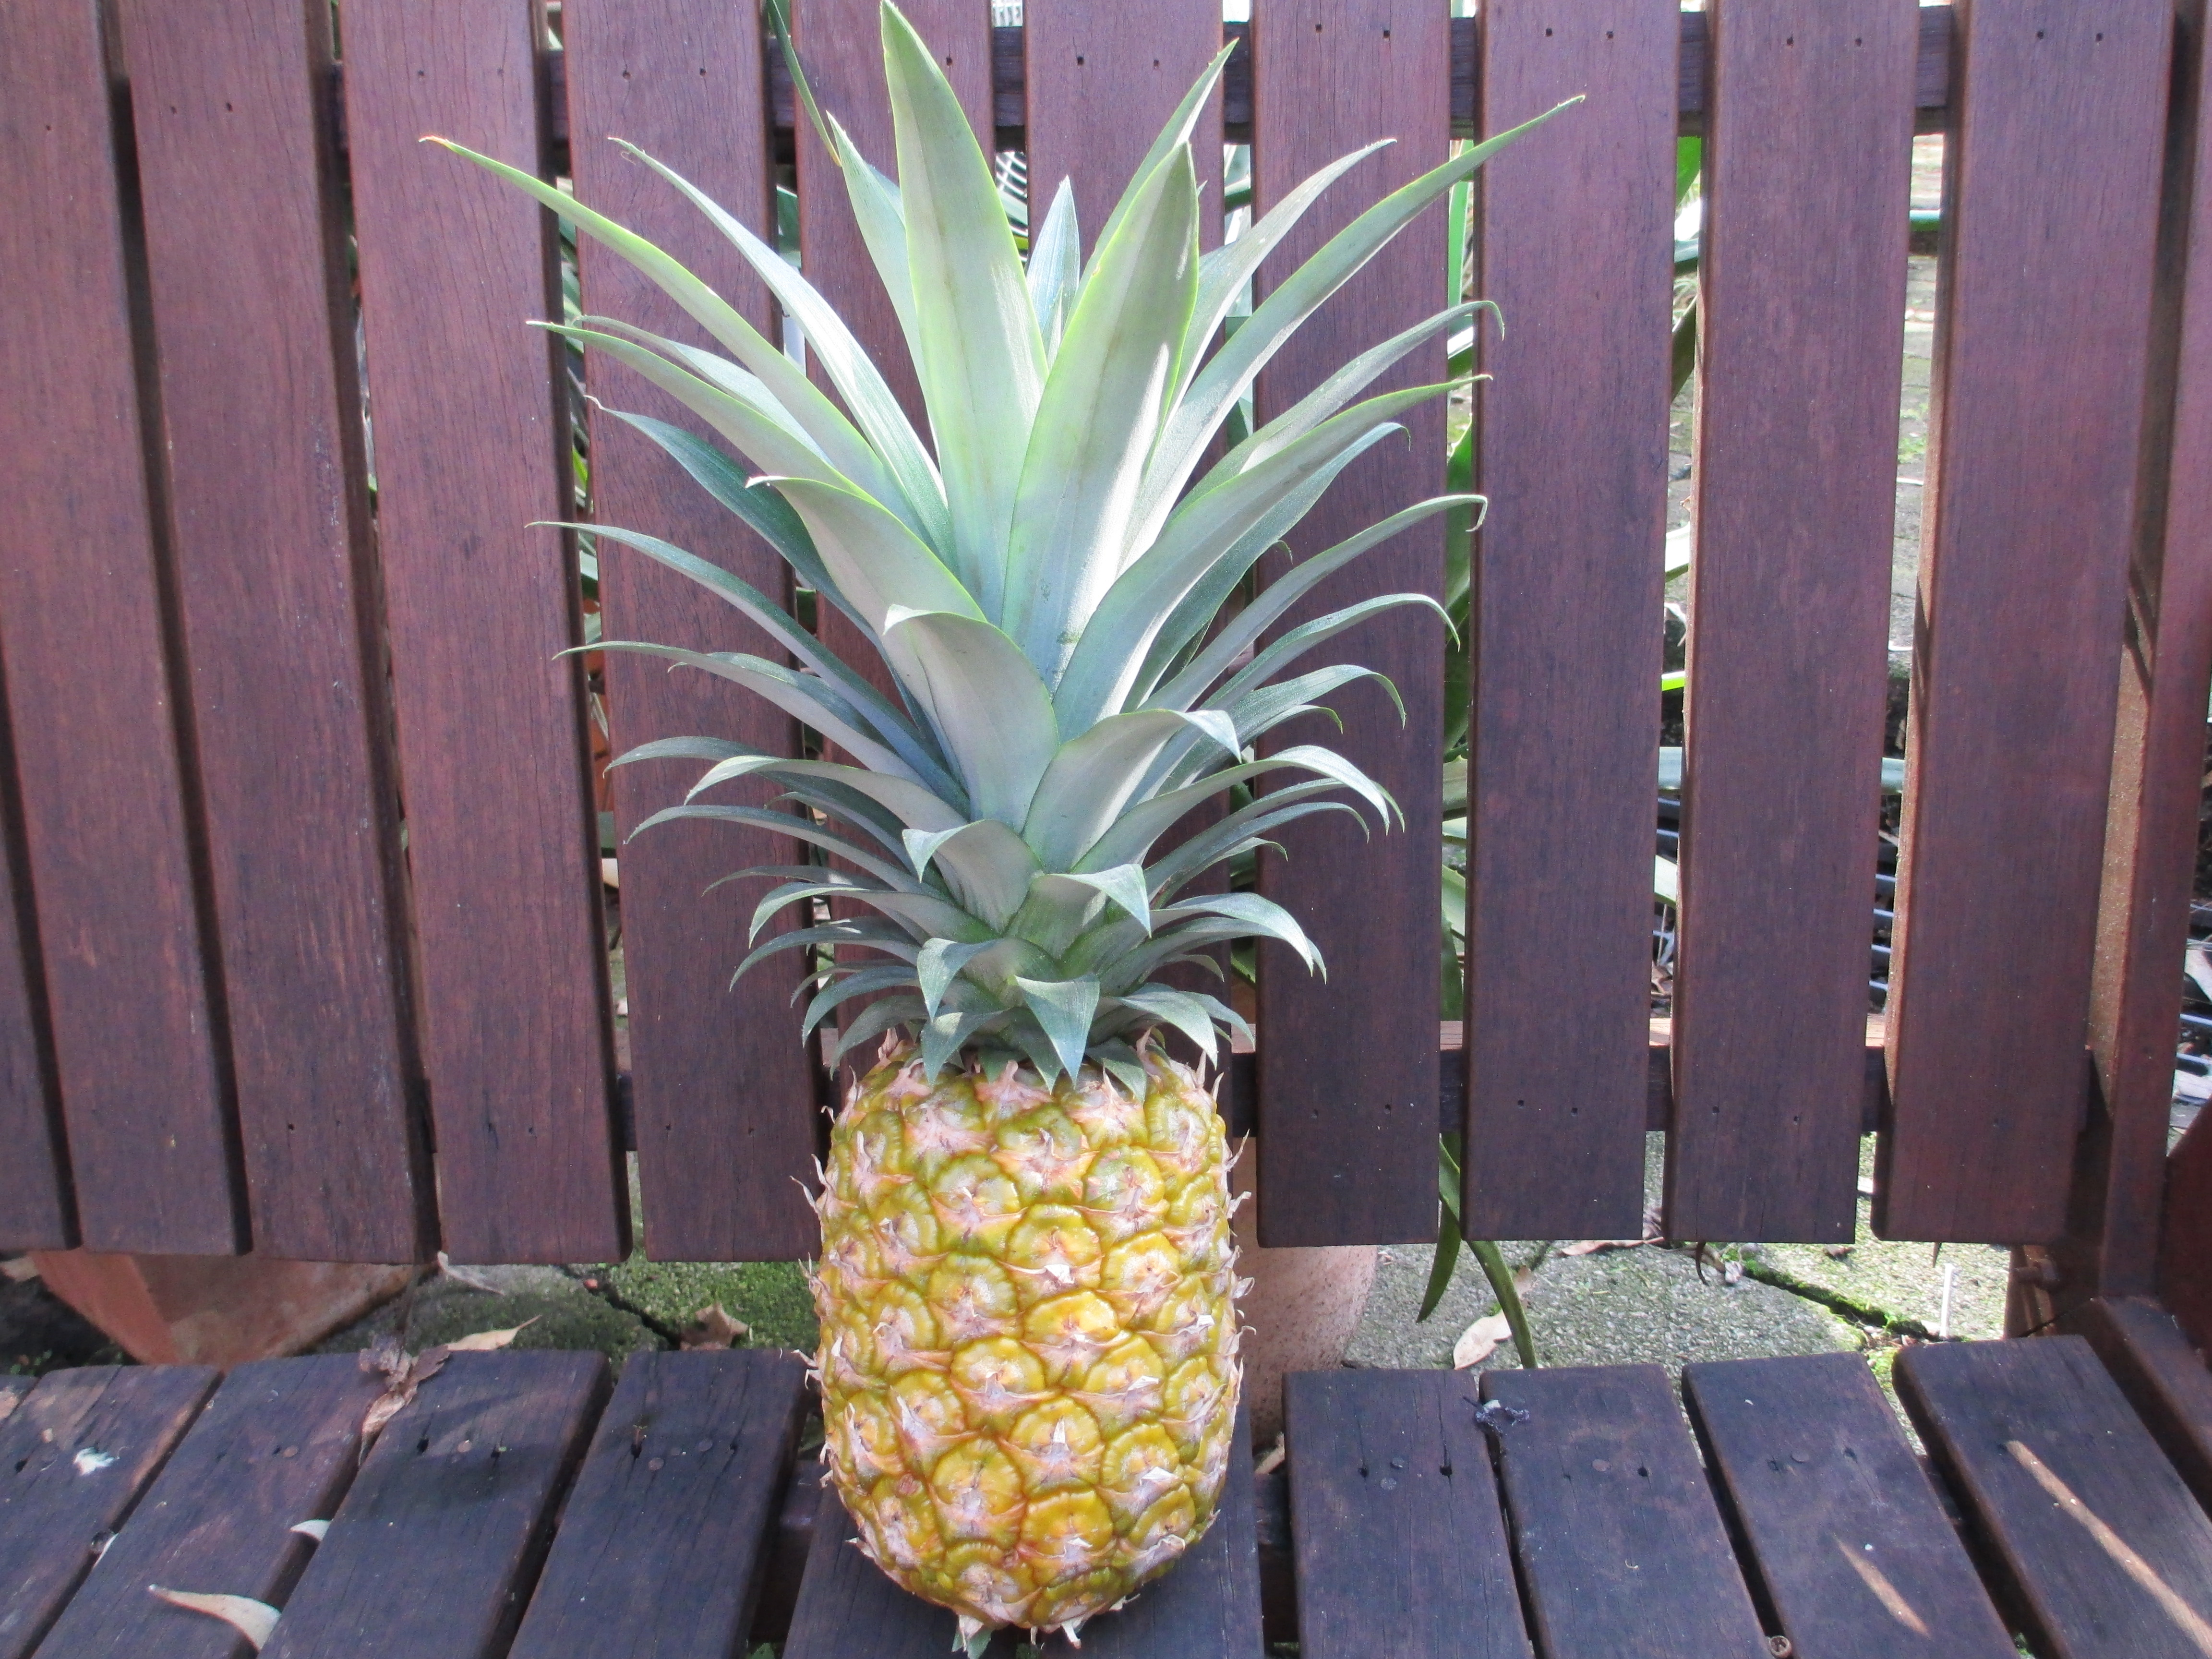 Magnificent pineapple!